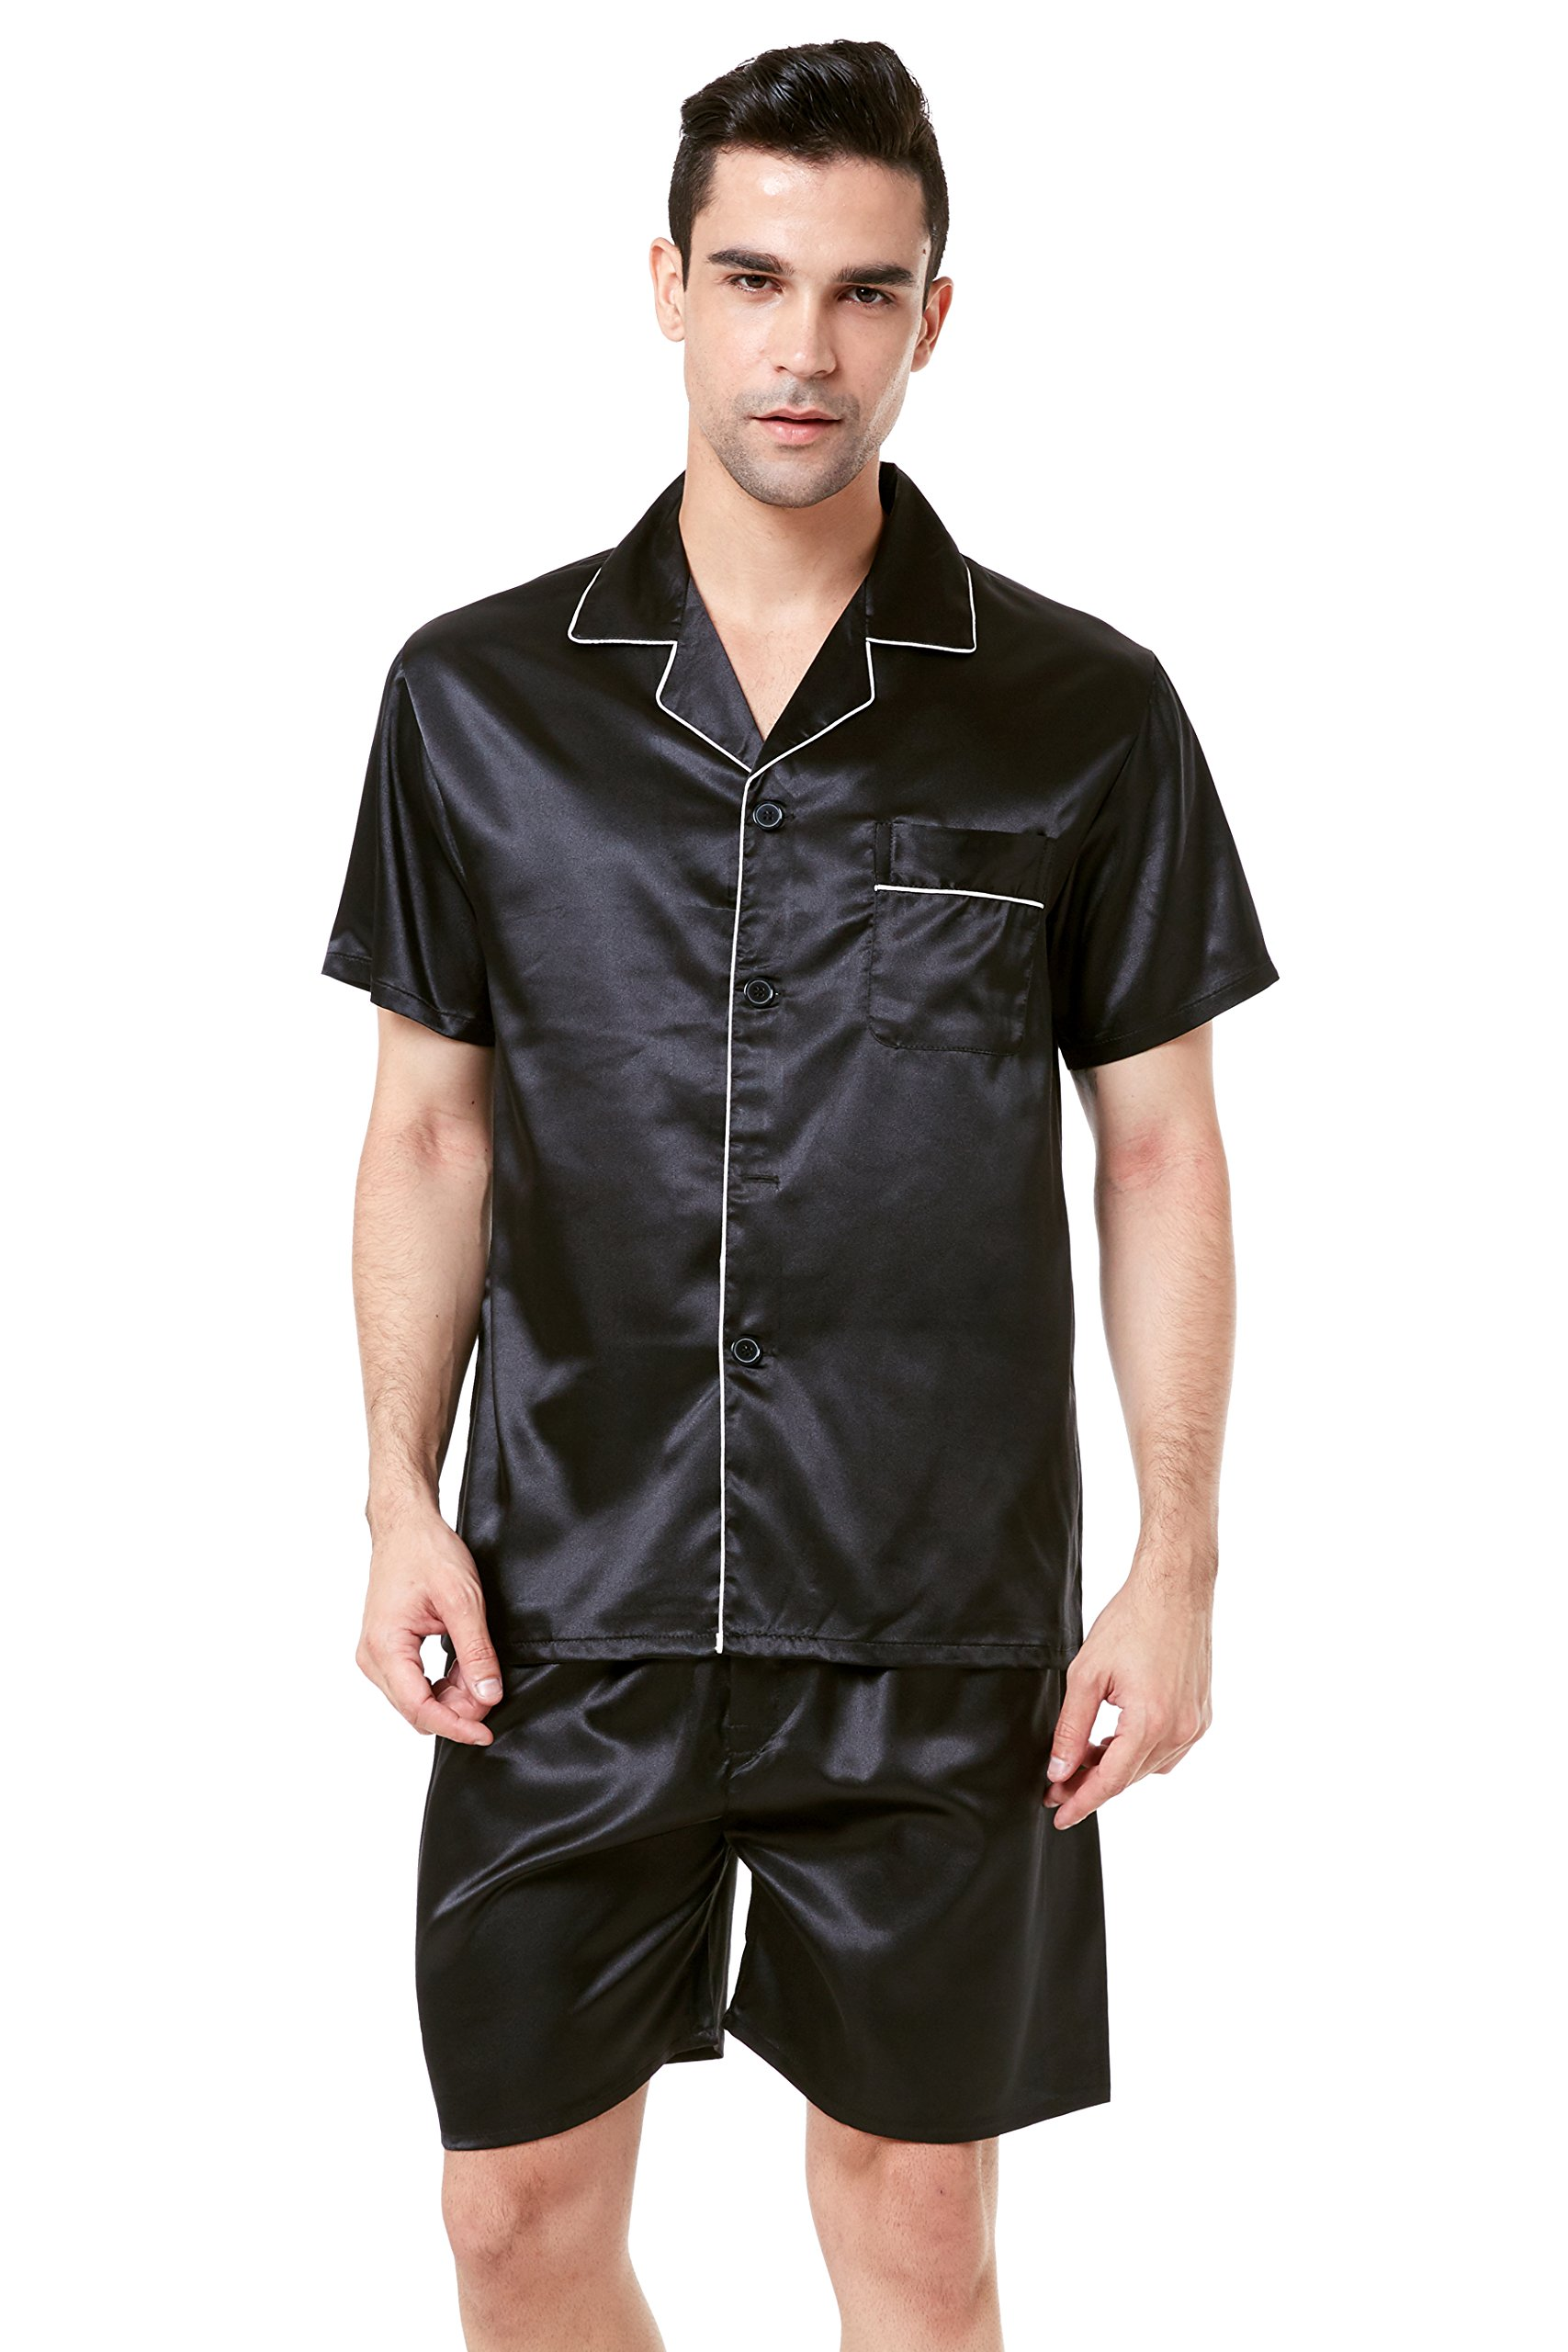 TONY AND CANDICE Men's Short Sleeve Satin Pajama Set with Shorts (Large, Black with White Piping) by TONY AND CANDICE